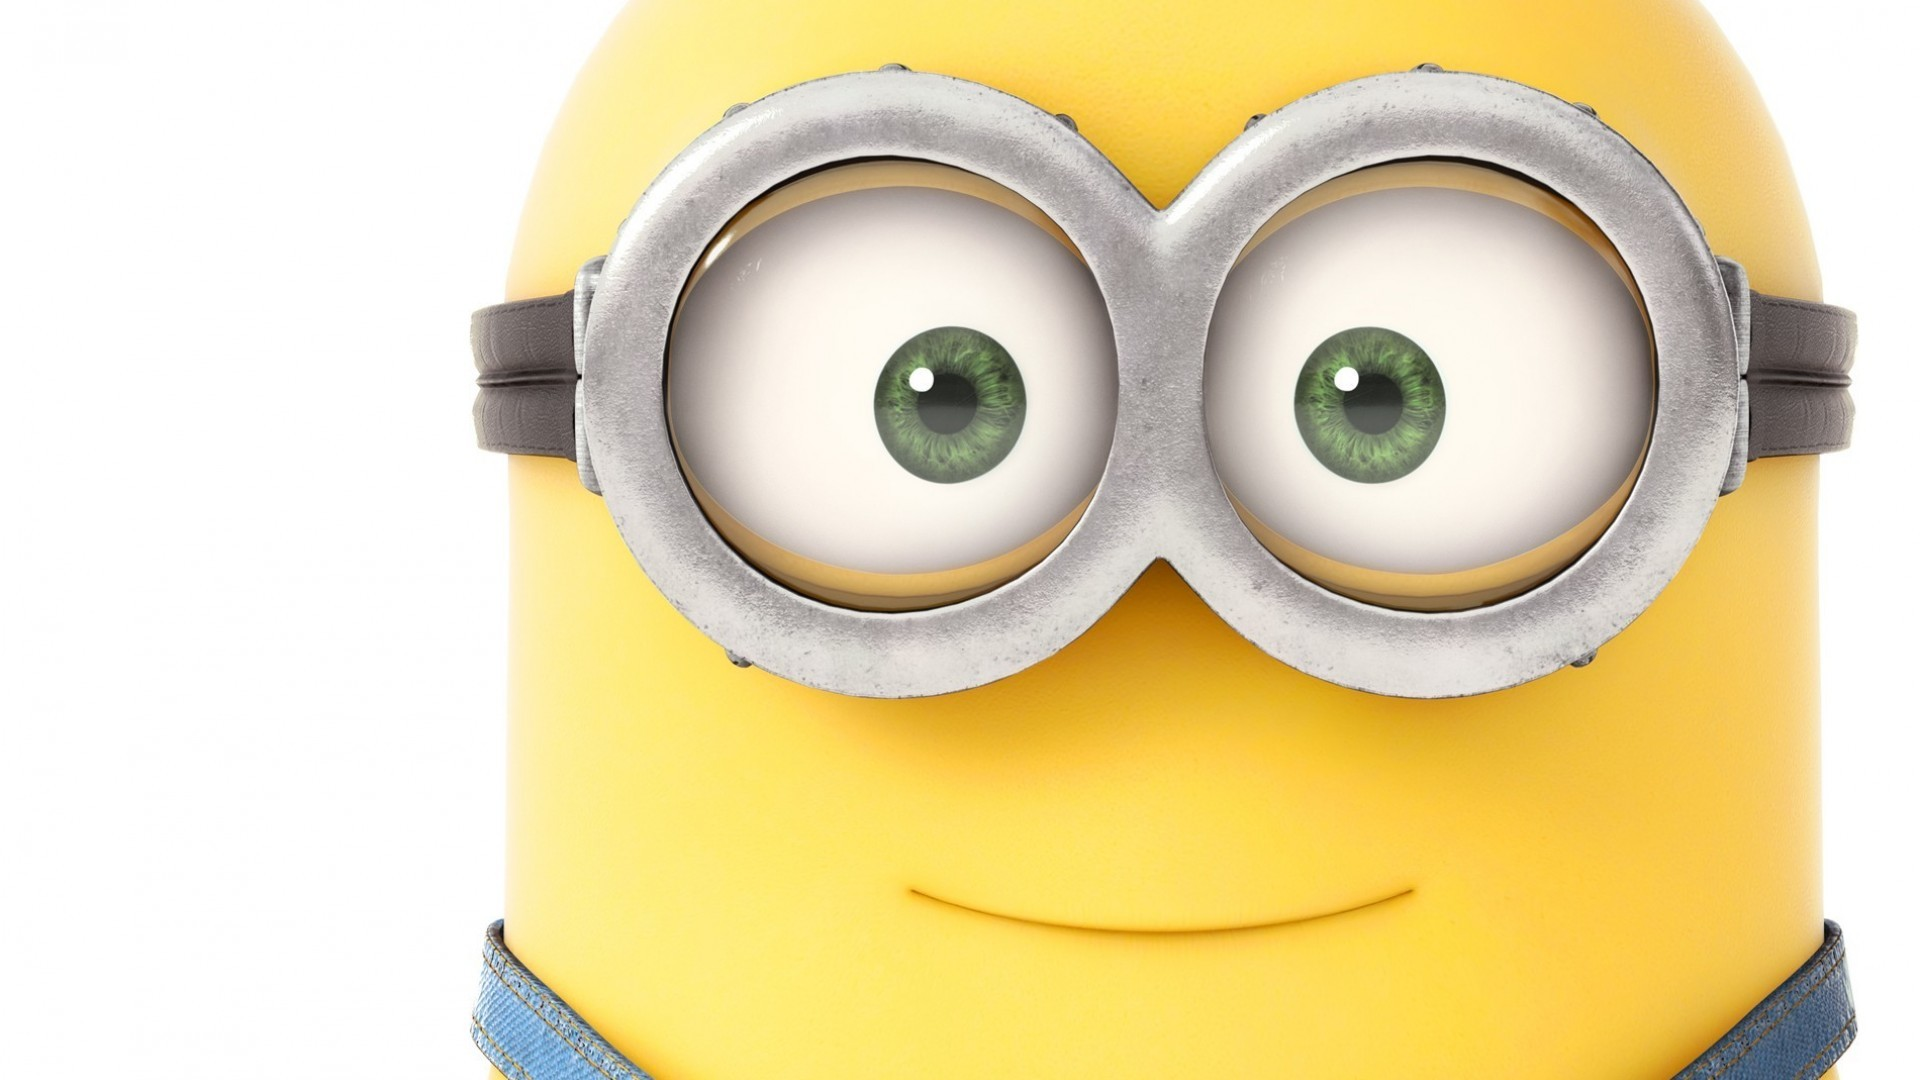 … minions images photos hd wallpaper download for desktop …